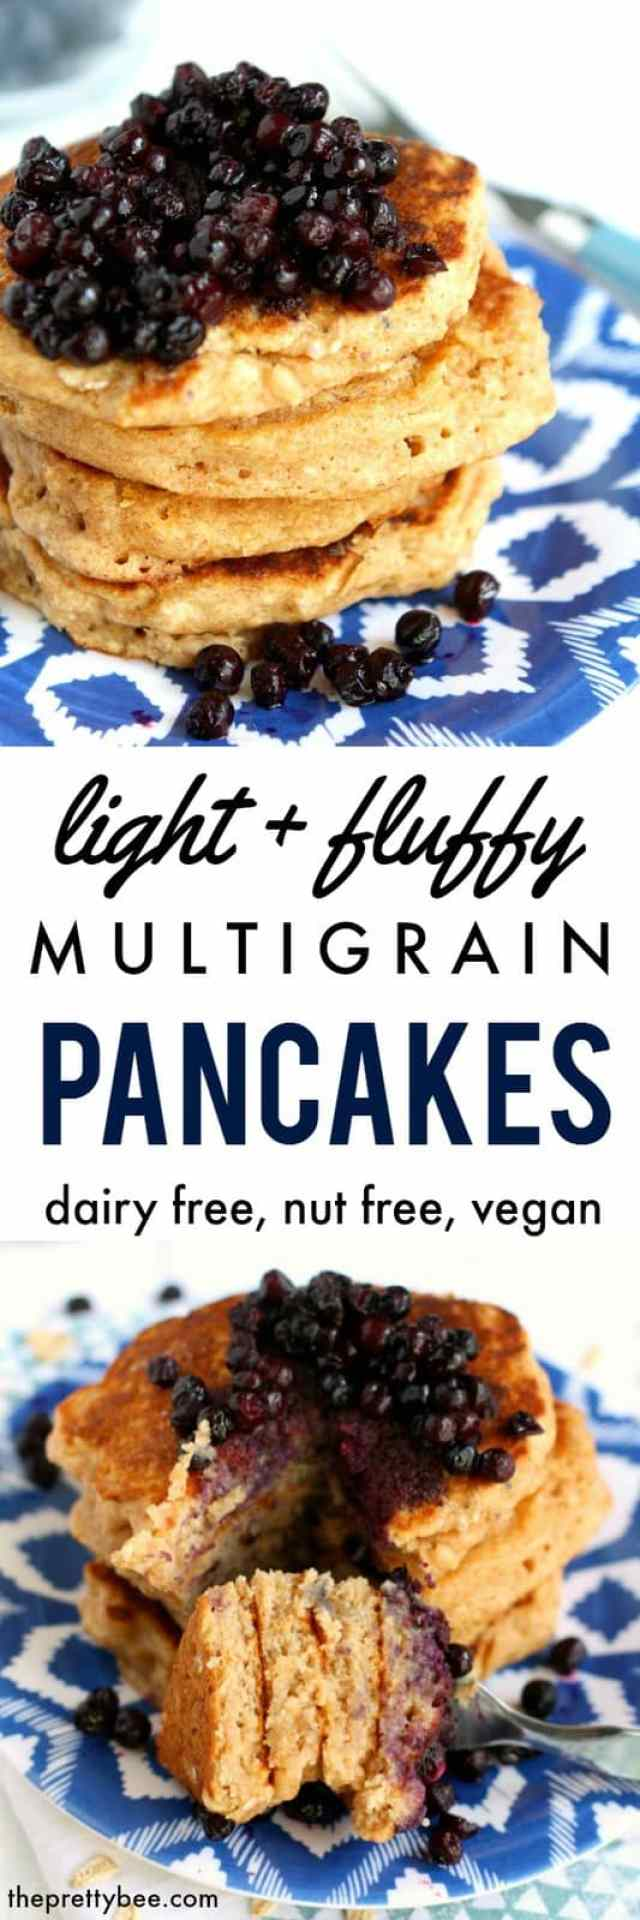 Light and fluffy vegan multigrain pancakes are a wonderful way to start your day! Top with a warm blueberry sauce for breakfast perfection!